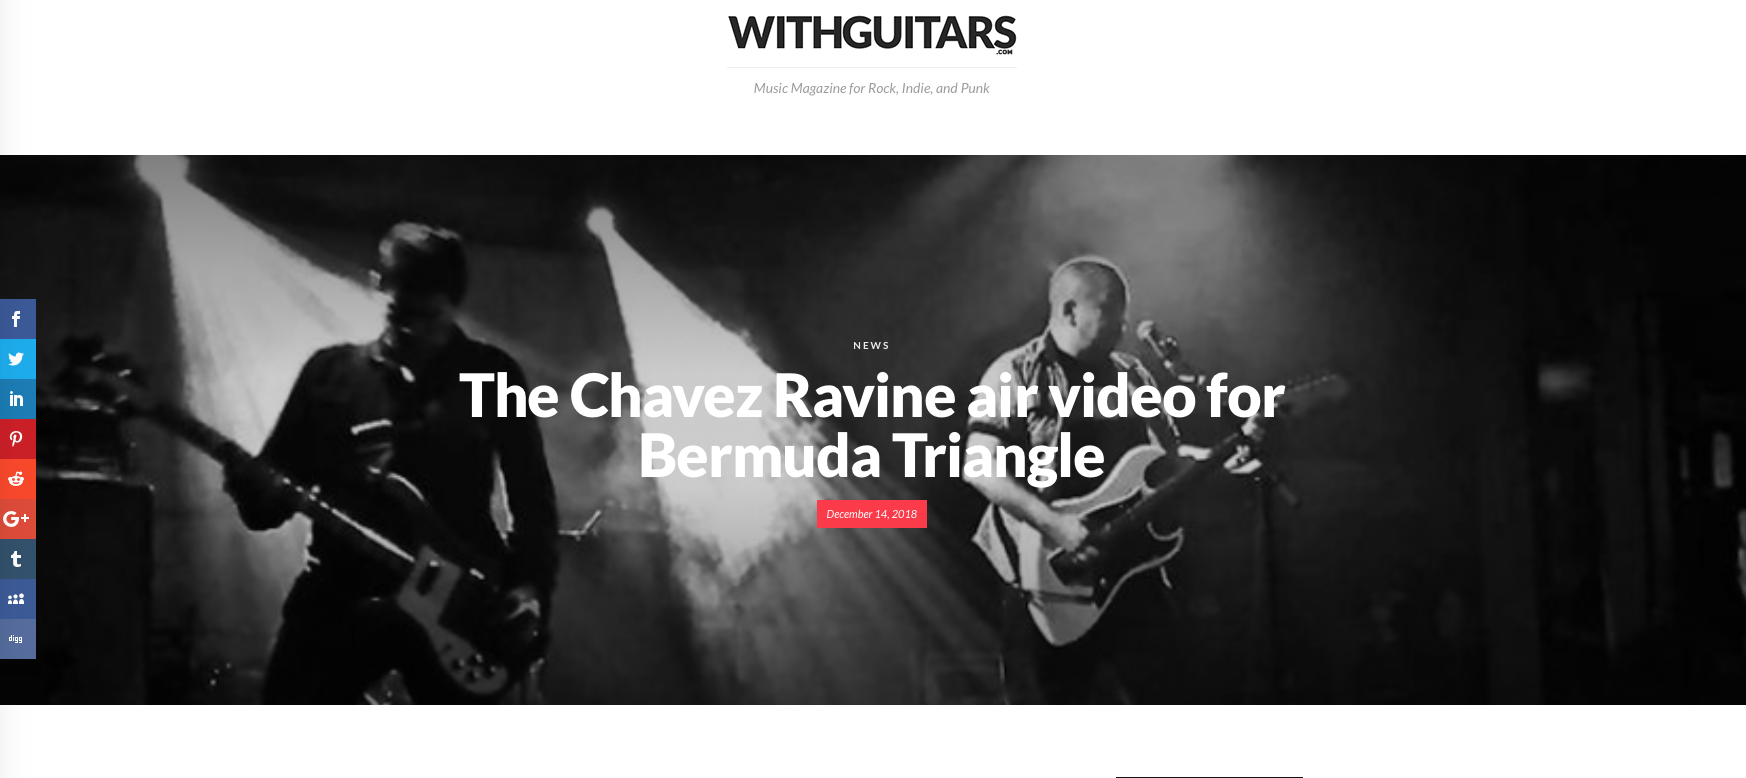 WITH GUITARS - BERMUDA TRIANGLE